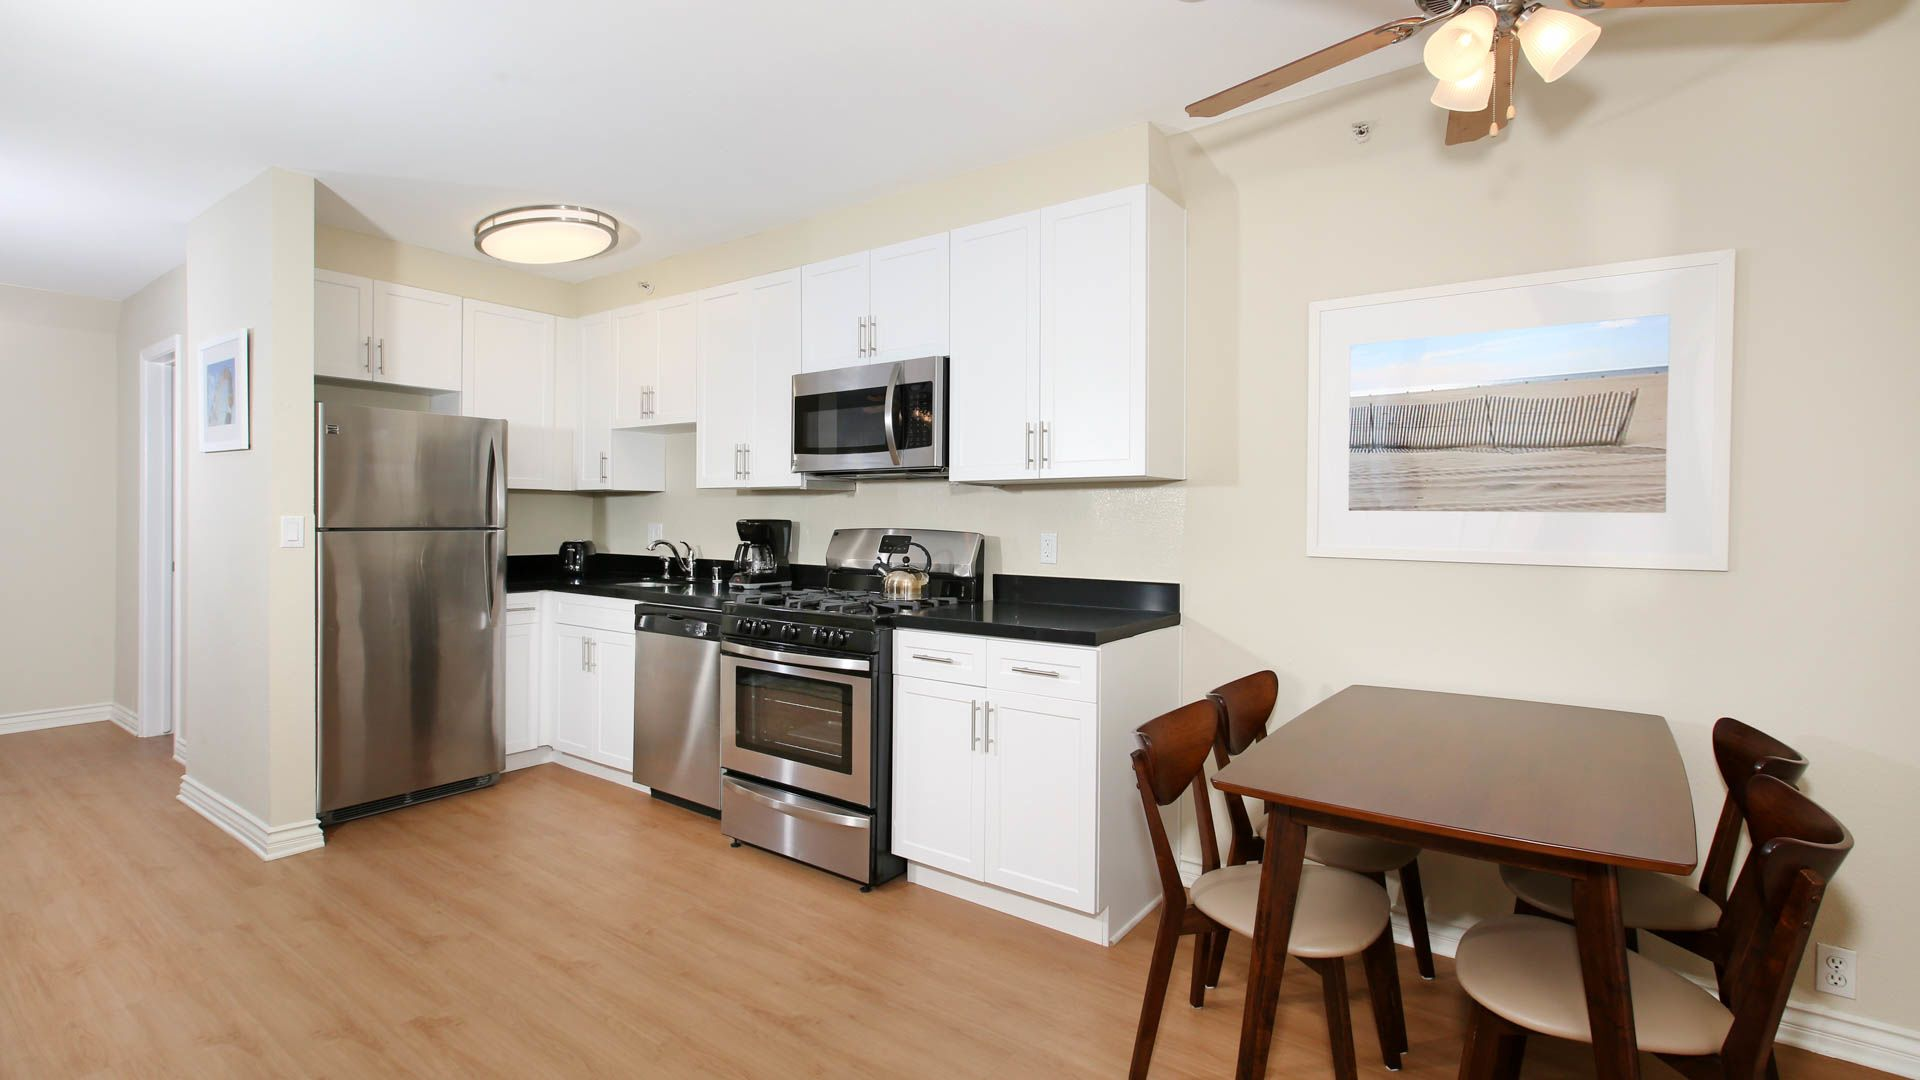 Citrus Suites Apartments - Kitchen and Dining Room